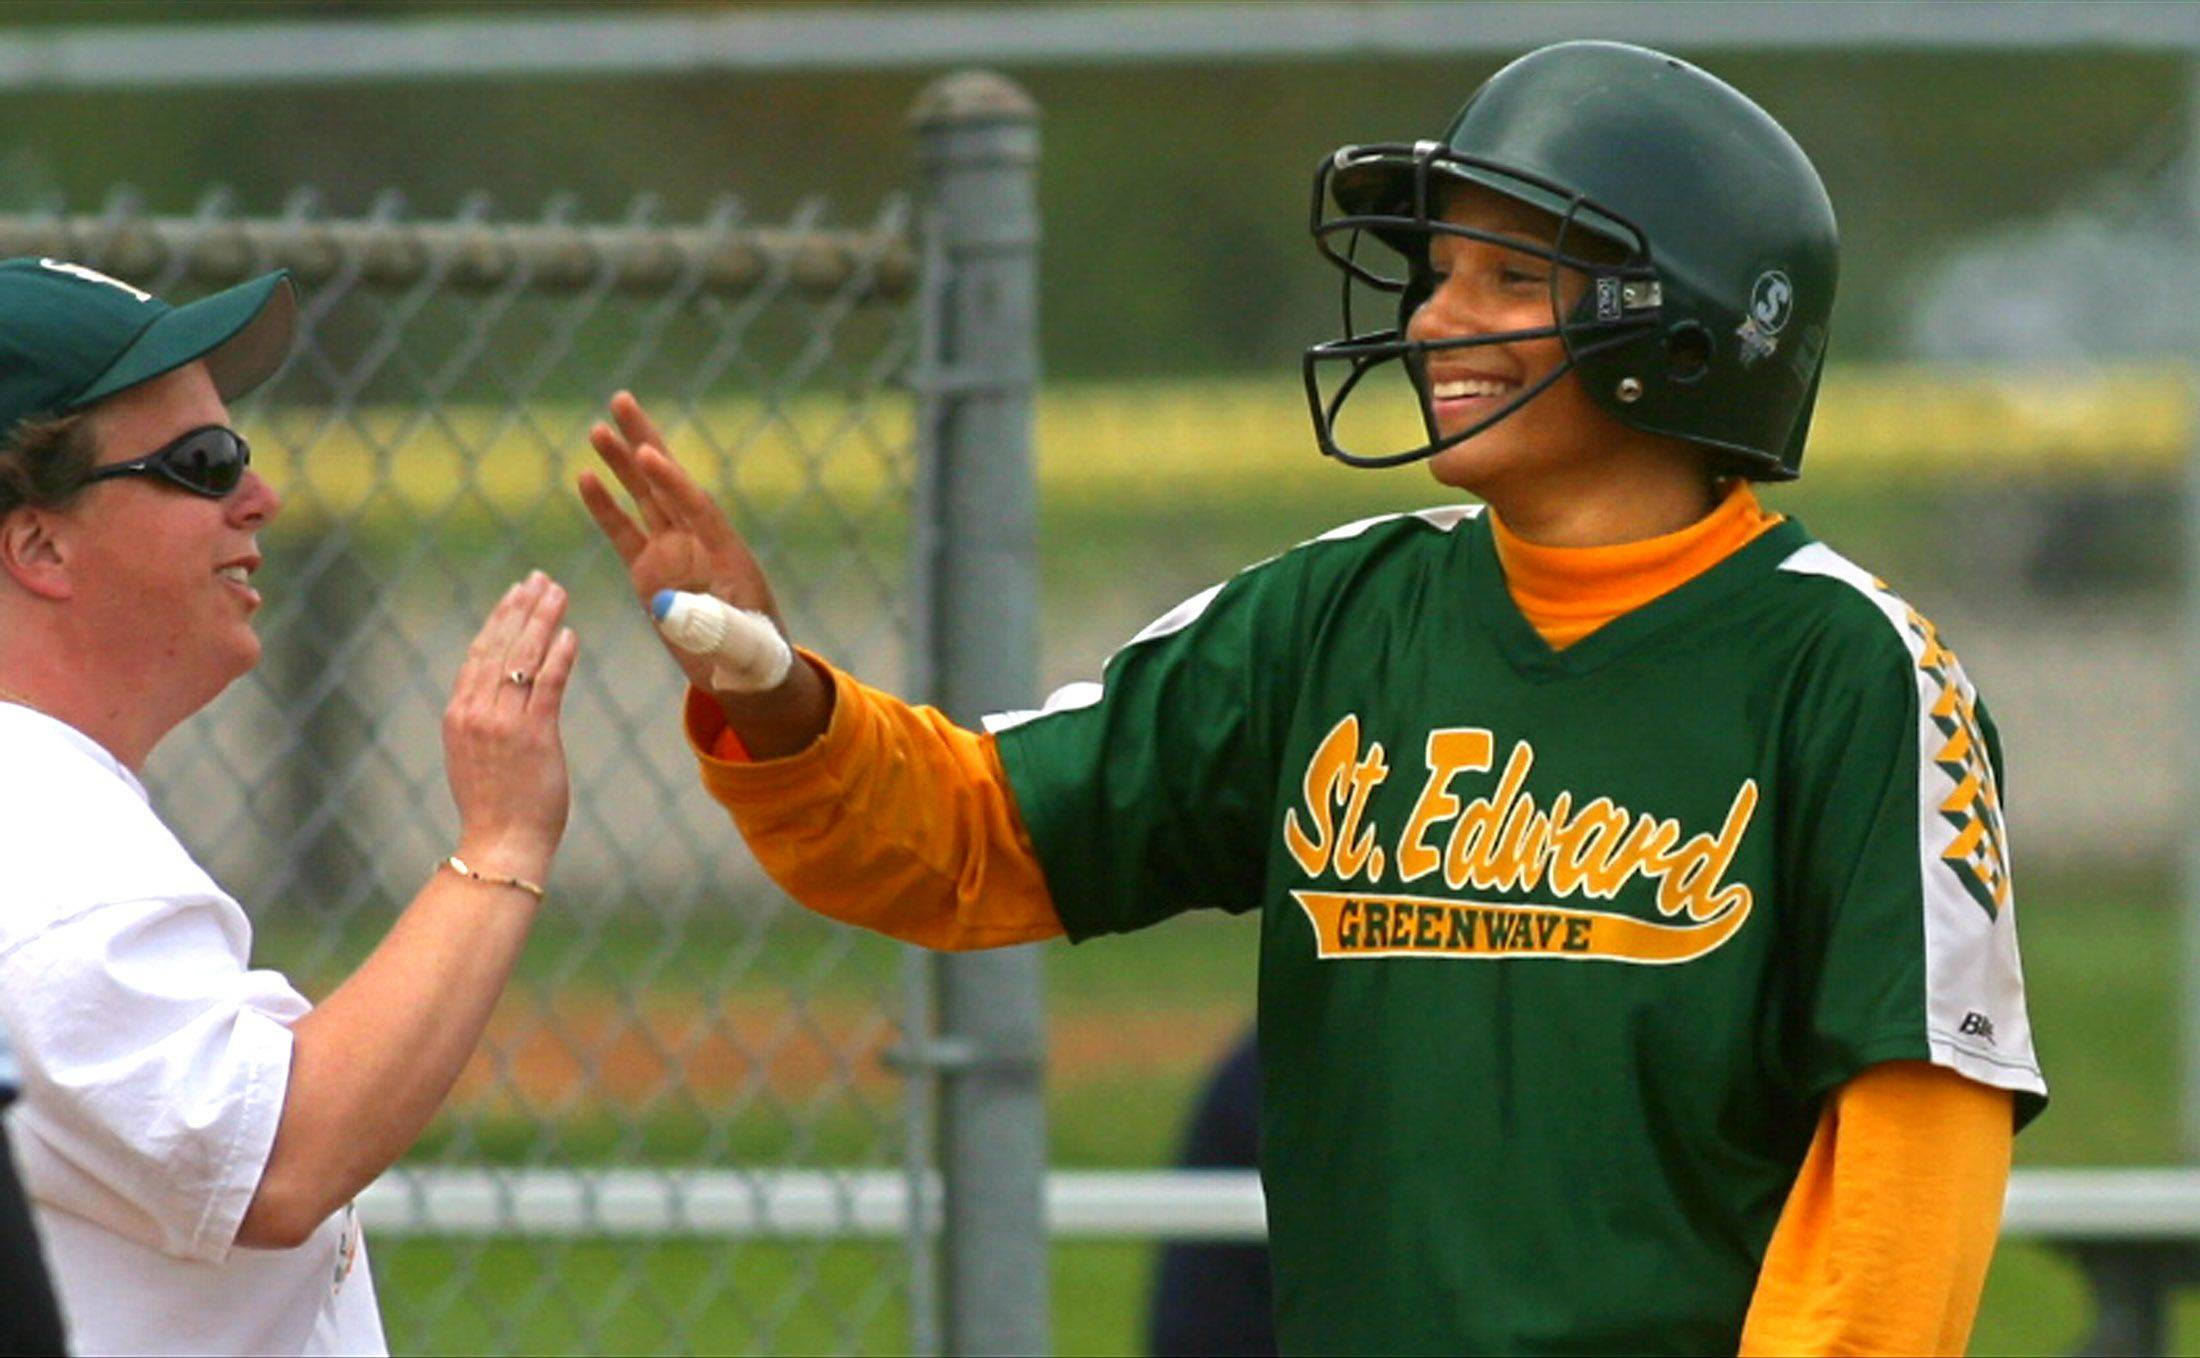 St Edward graduate Lissa Fehlman (right) is congratulated at third base by coach Peg Corcoran during the 2003 softball season. Fehlman will be inducted into the St. Edward Hall of Fame next weekend.